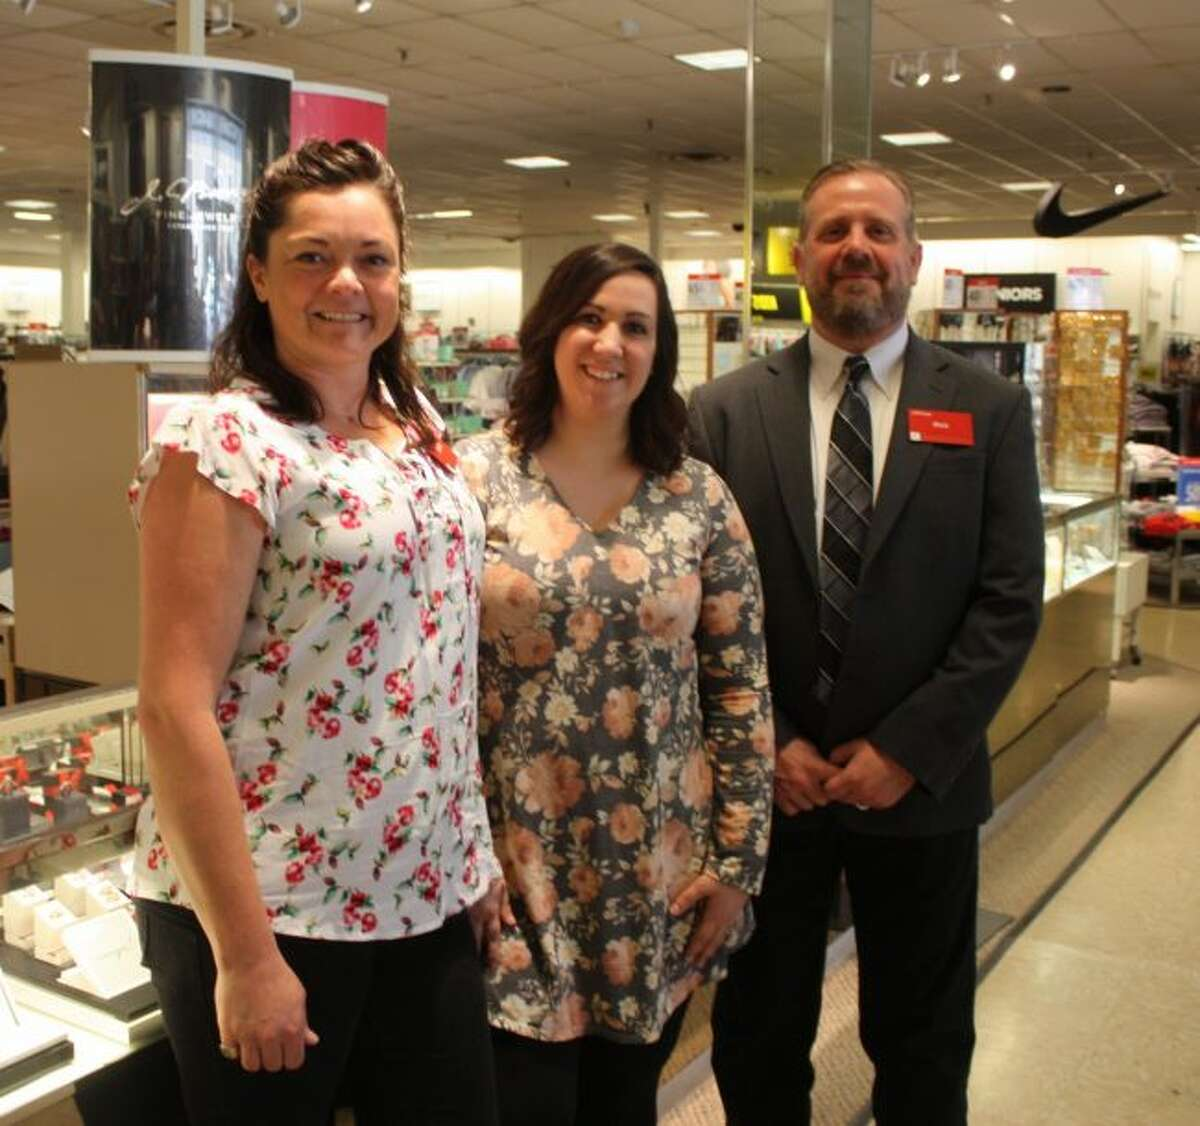 Pictured from left are Big Rapids JCPenney cashier supervisor Krystle Nellis, merchandise supervisor Kristin Murawski and general manager Rick Swinson at the store on Thursday. Swinson was recently given the company's Founder's Award for the local store's accomplishments in 2018. (Pioneer photo/Tim Rath)